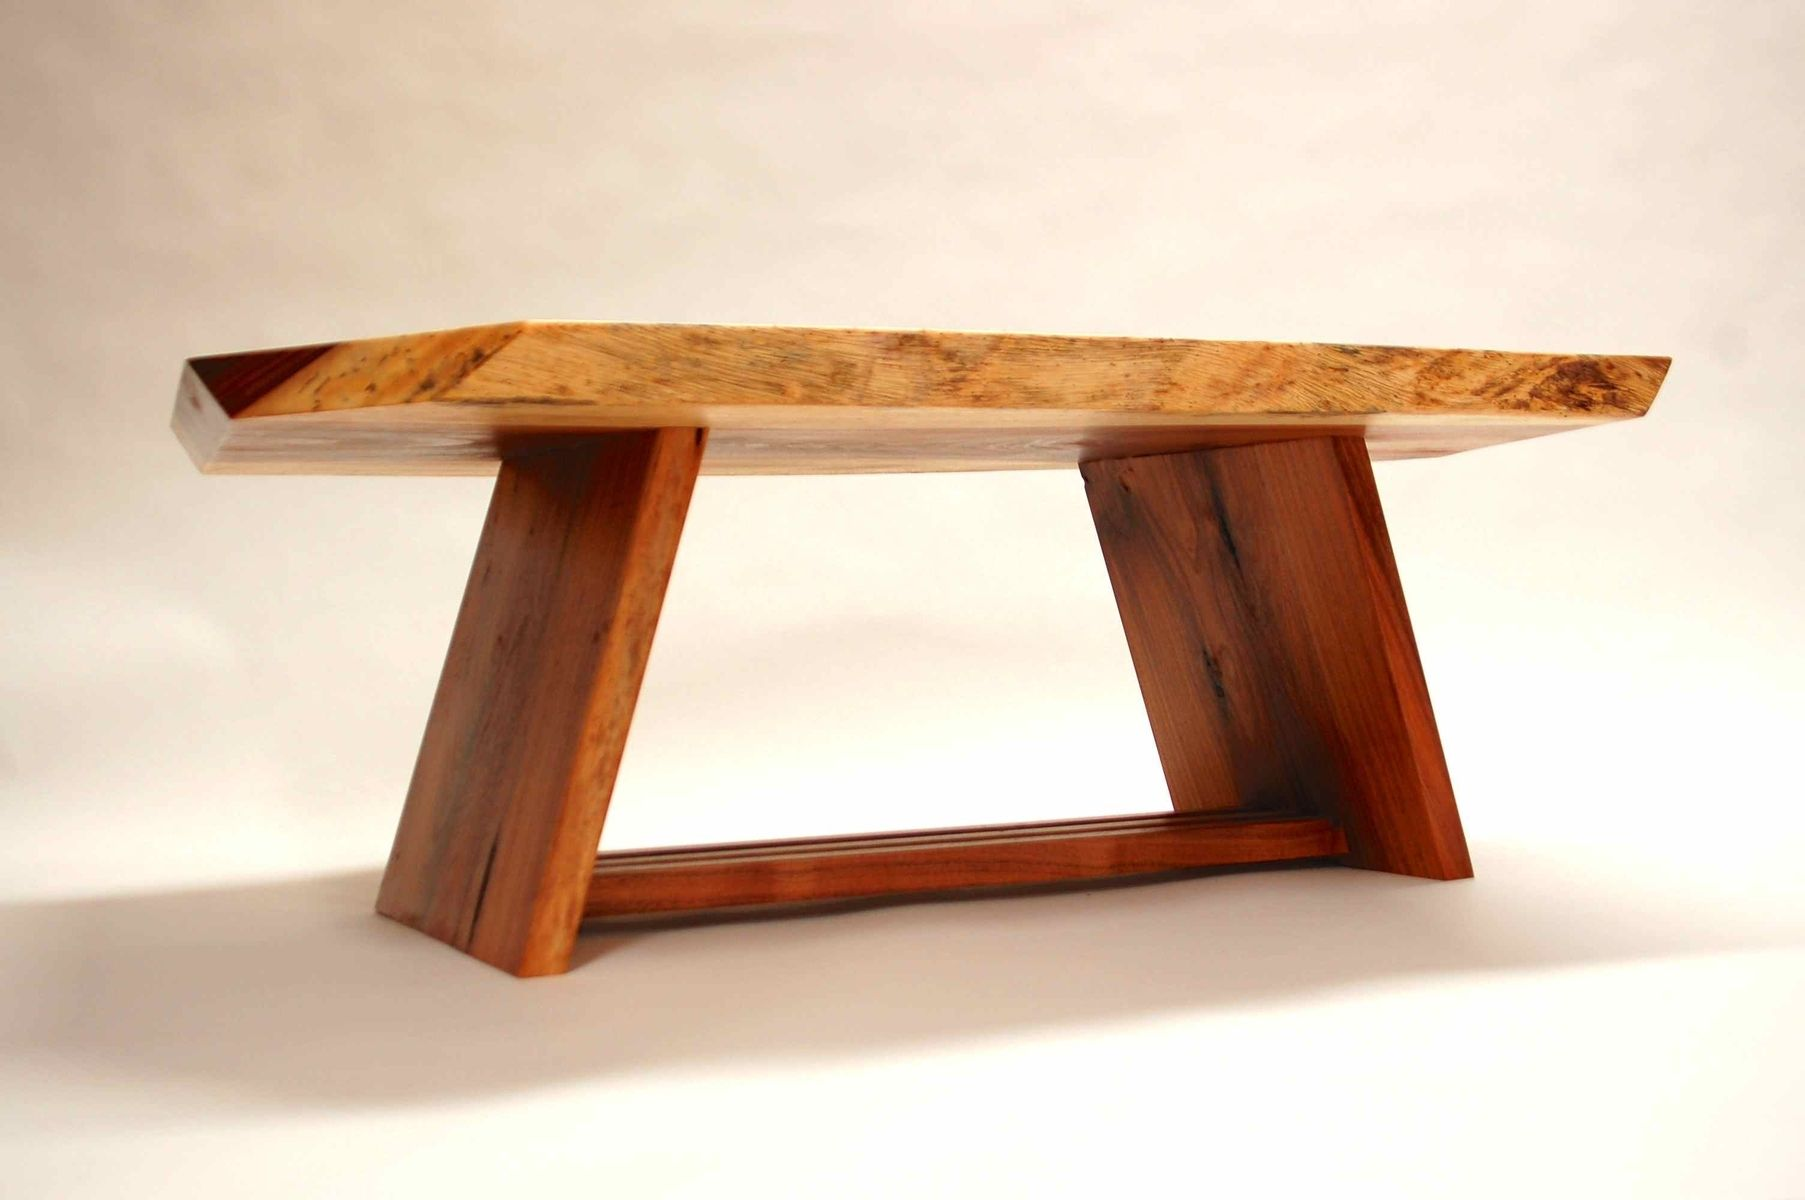 Handmade Acacia Coffee Table by CB Studios  CustomMade.com